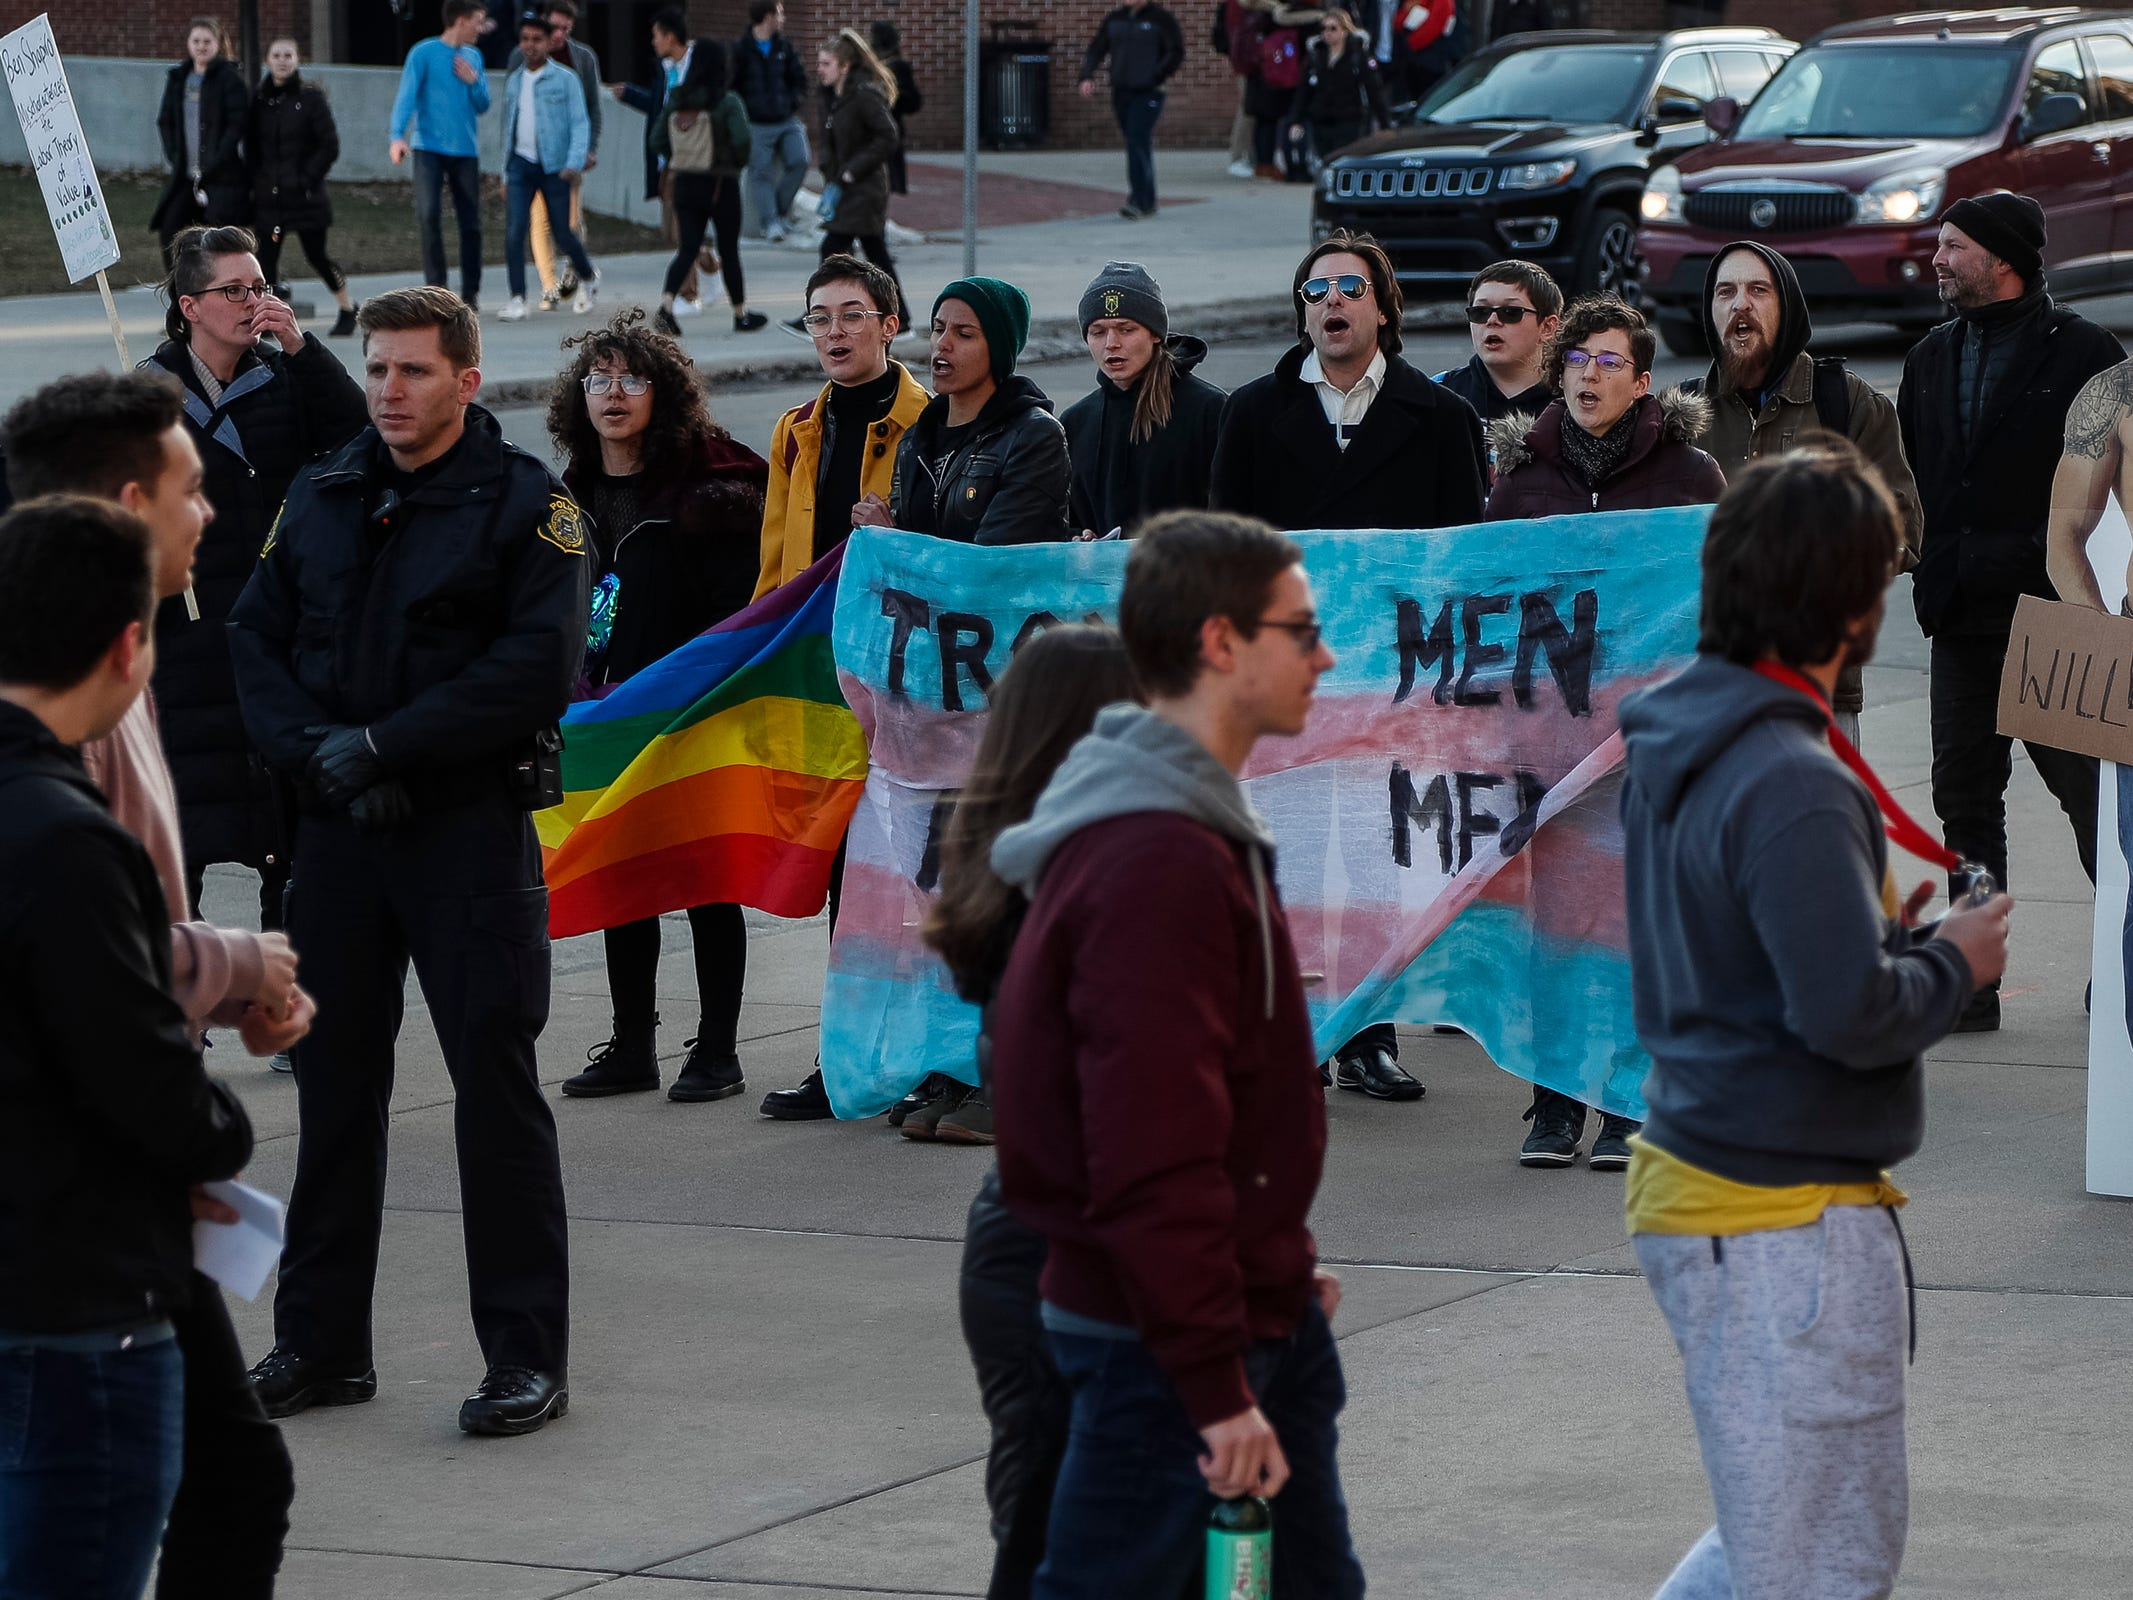 Protesters protest outside of the Rackham Auditorium on U-M central campus in Ann Arbor as attendees enter the building for Ben Shapiro's speech, Tuesday, March 12. , Tuesday, March 12, 2019.